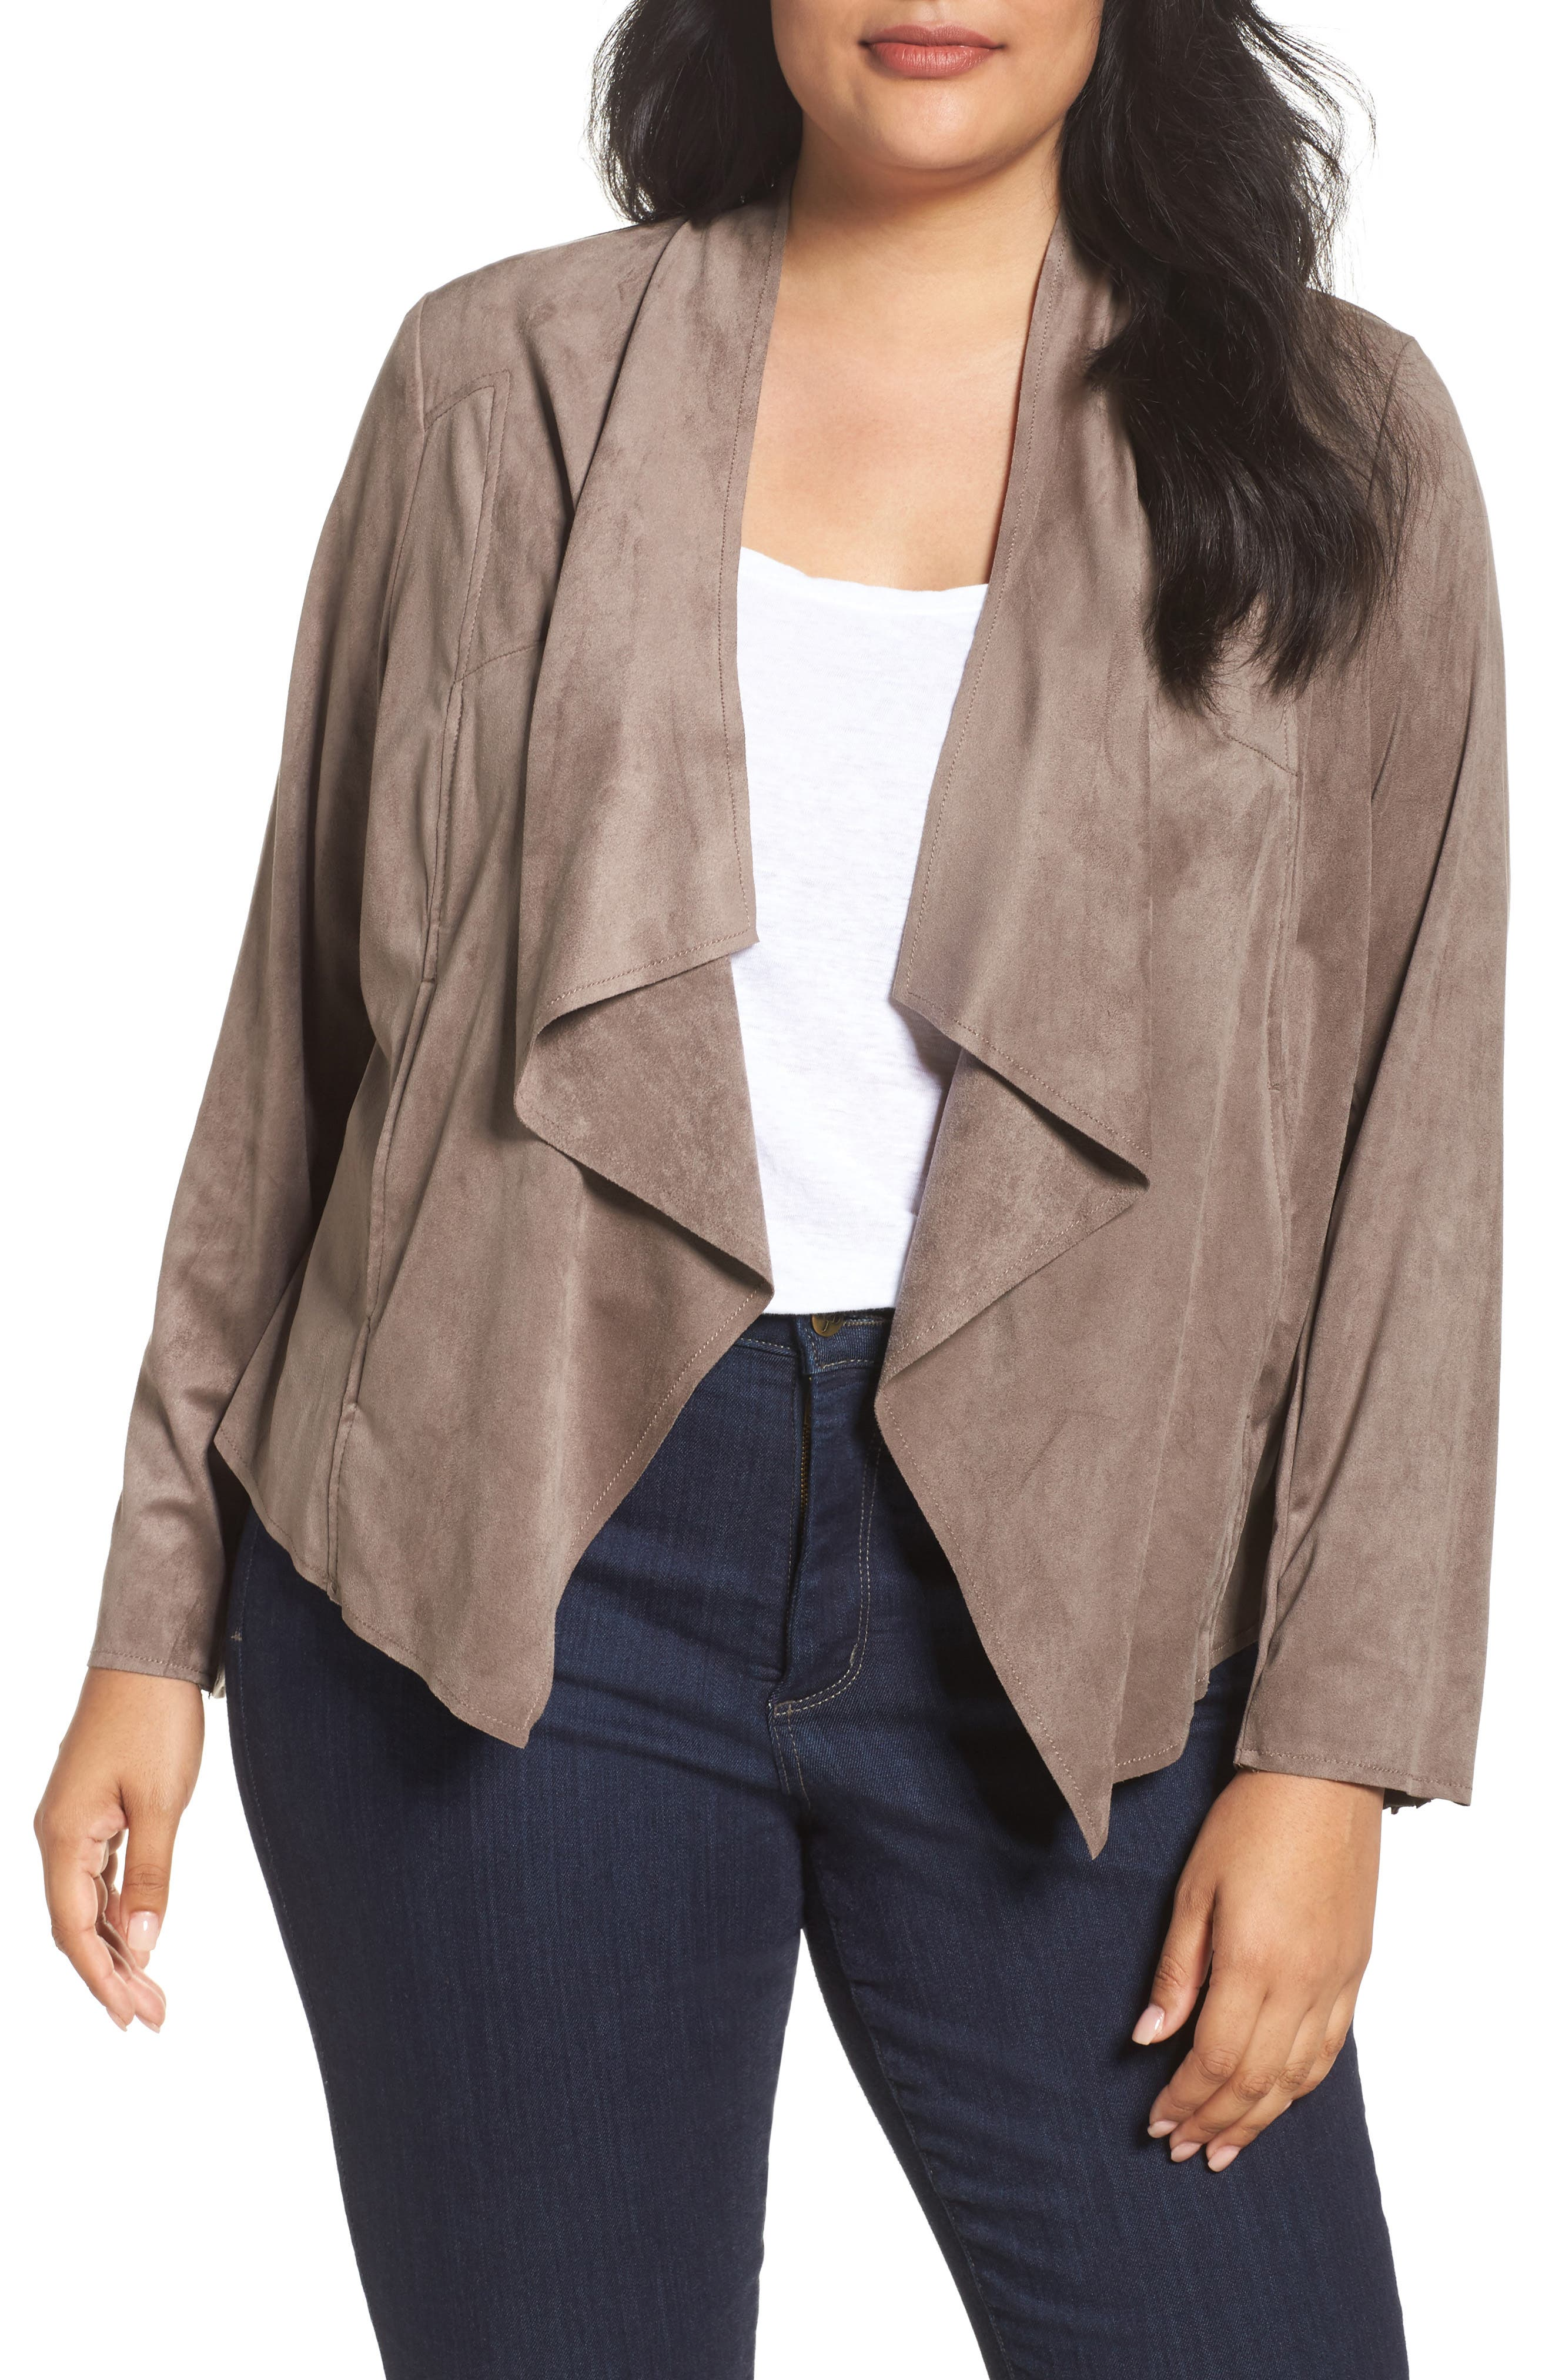 Alternate Image 1 Selected - KUT from the Kloth Drape Front Faux Suede Jacket (Plus Size)